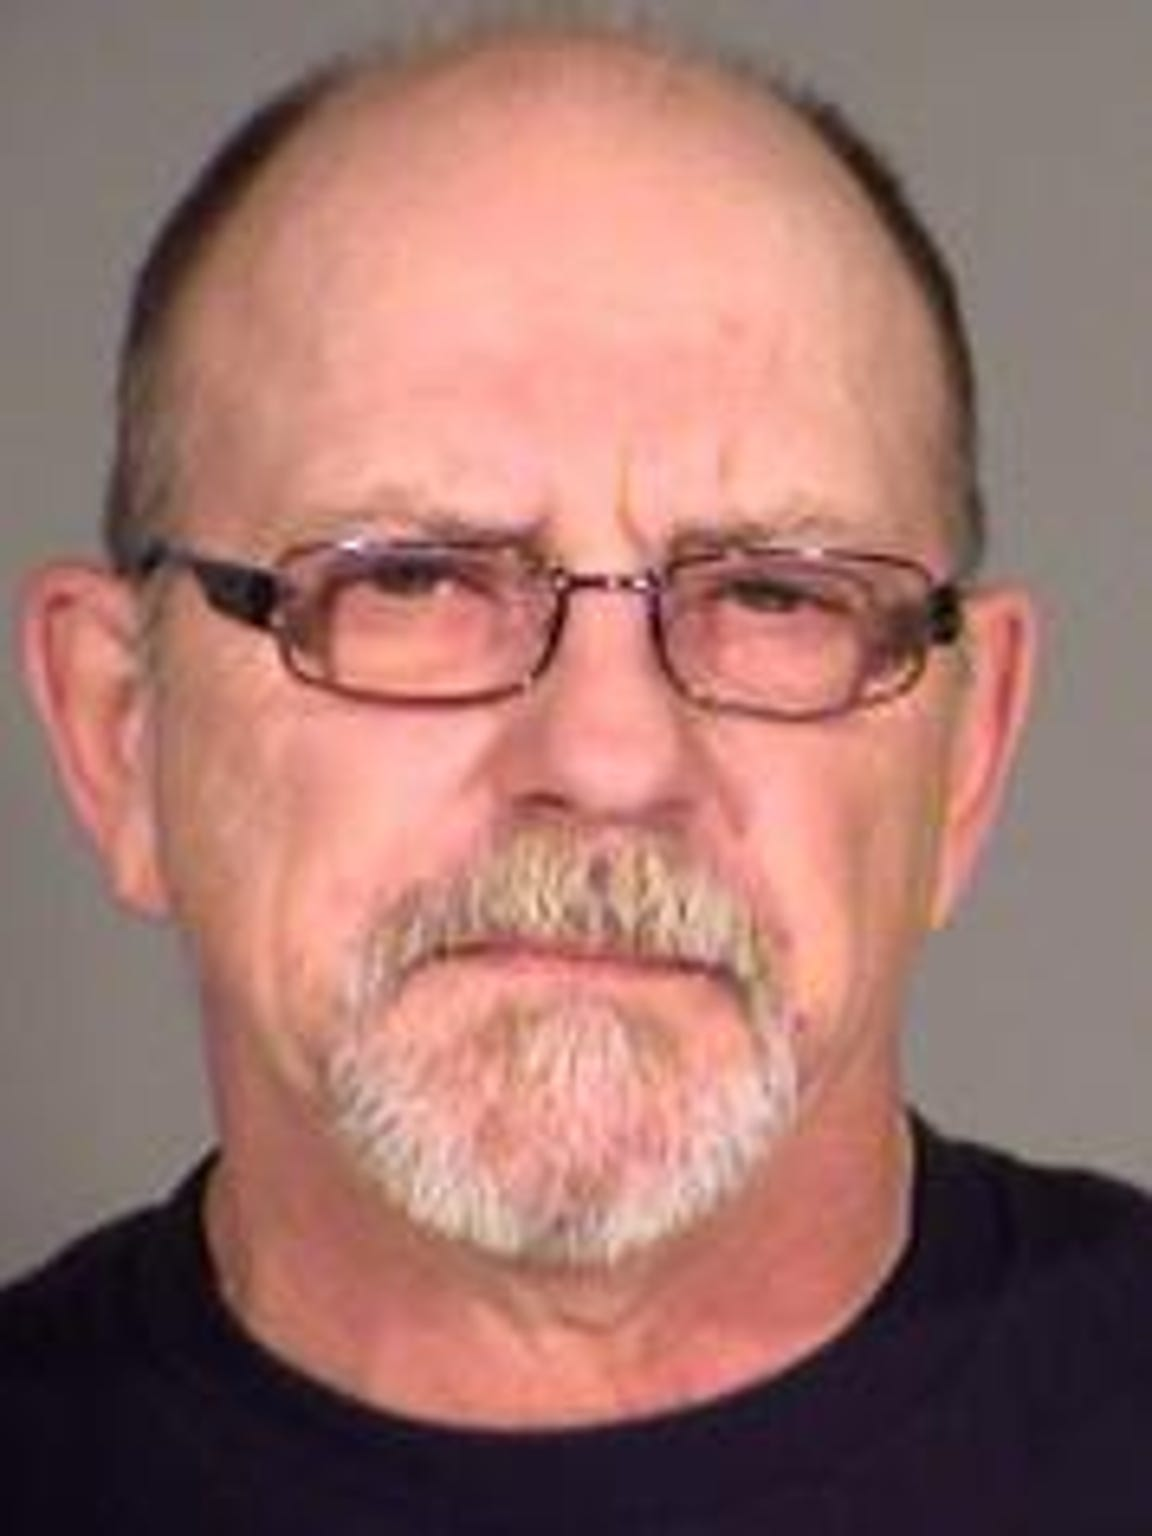 In late March, Dennis J. Brantner, 61, was charged